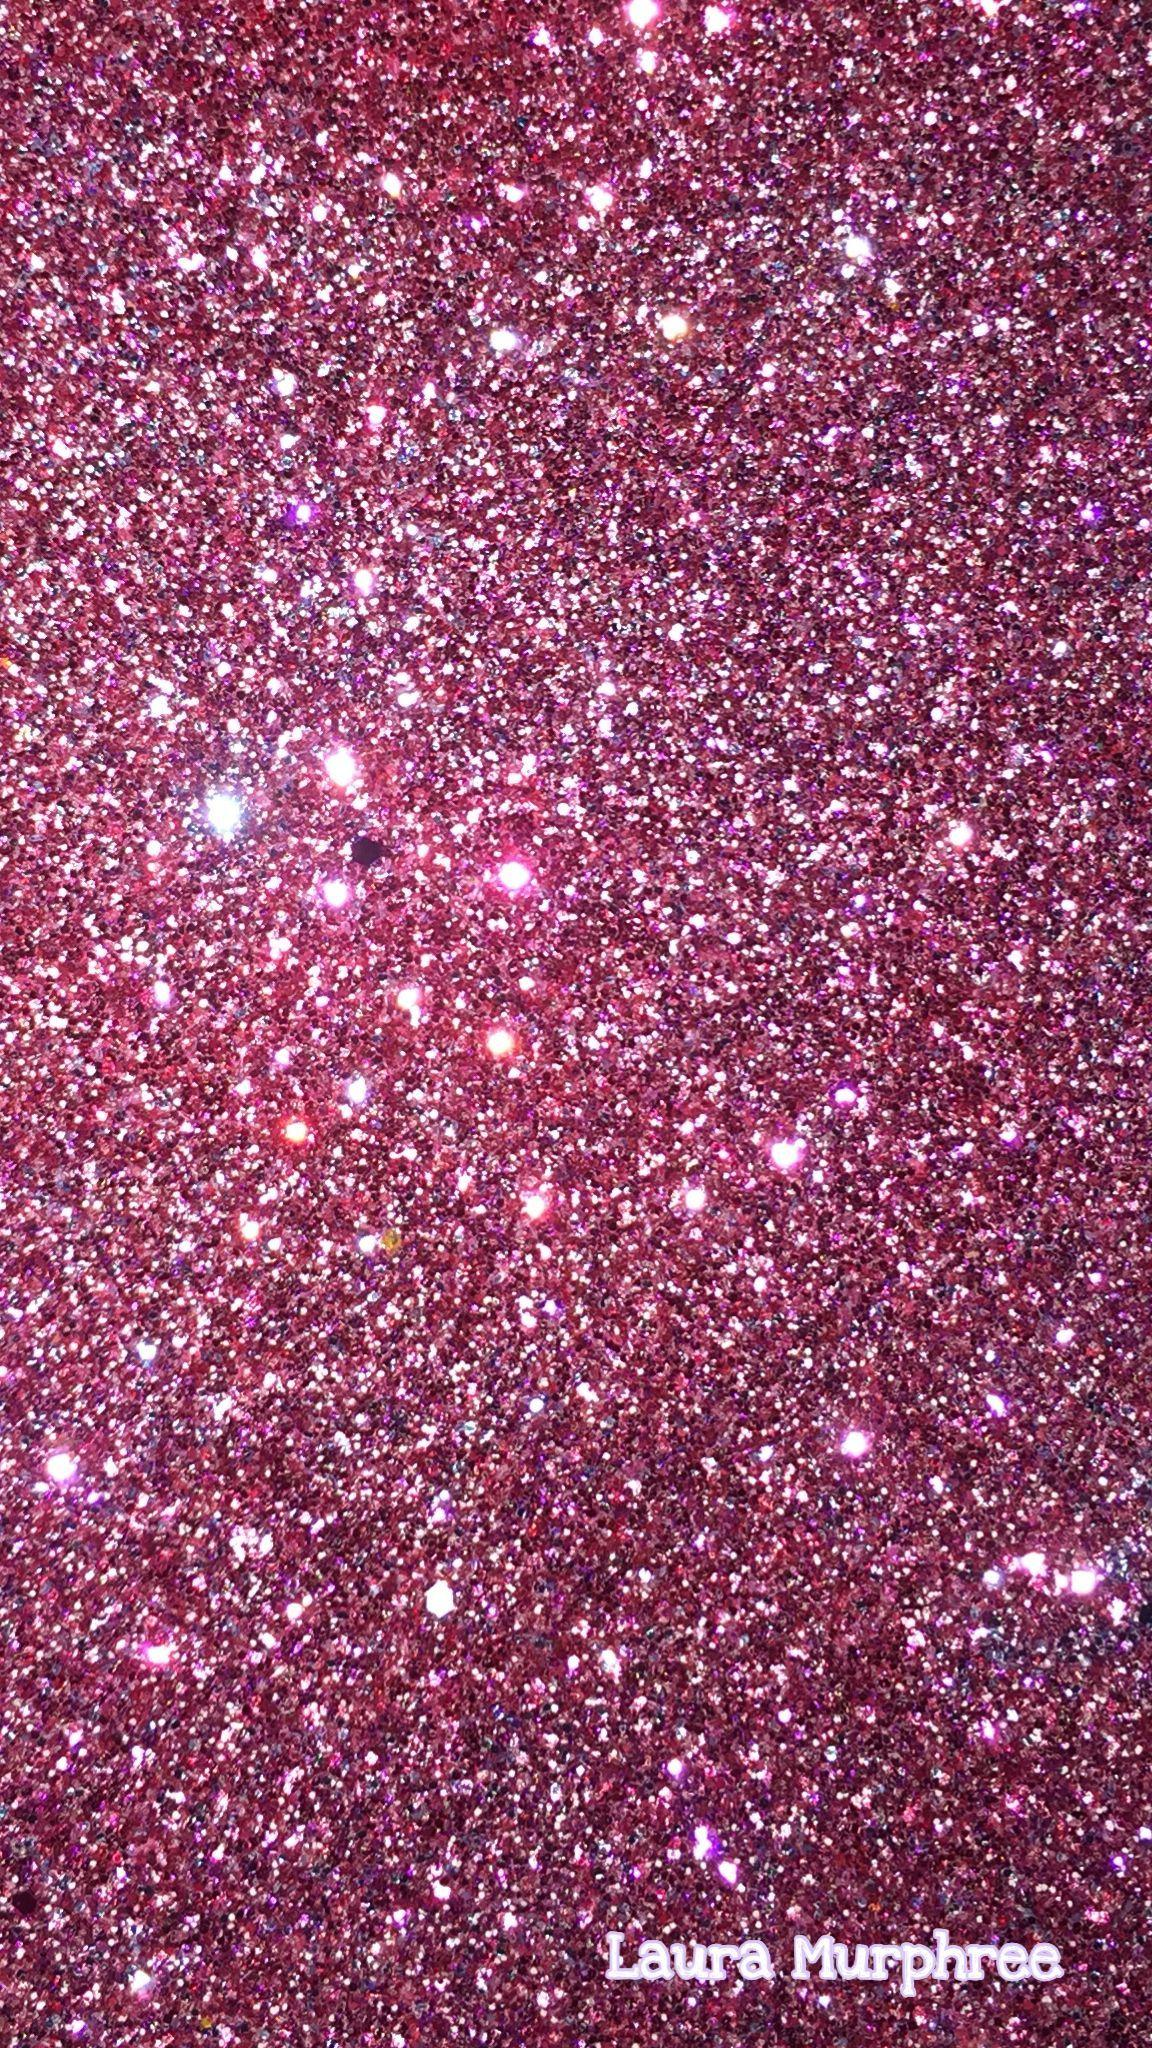 Neon Pink Glitter Backgrounds - Wallpaper Cave